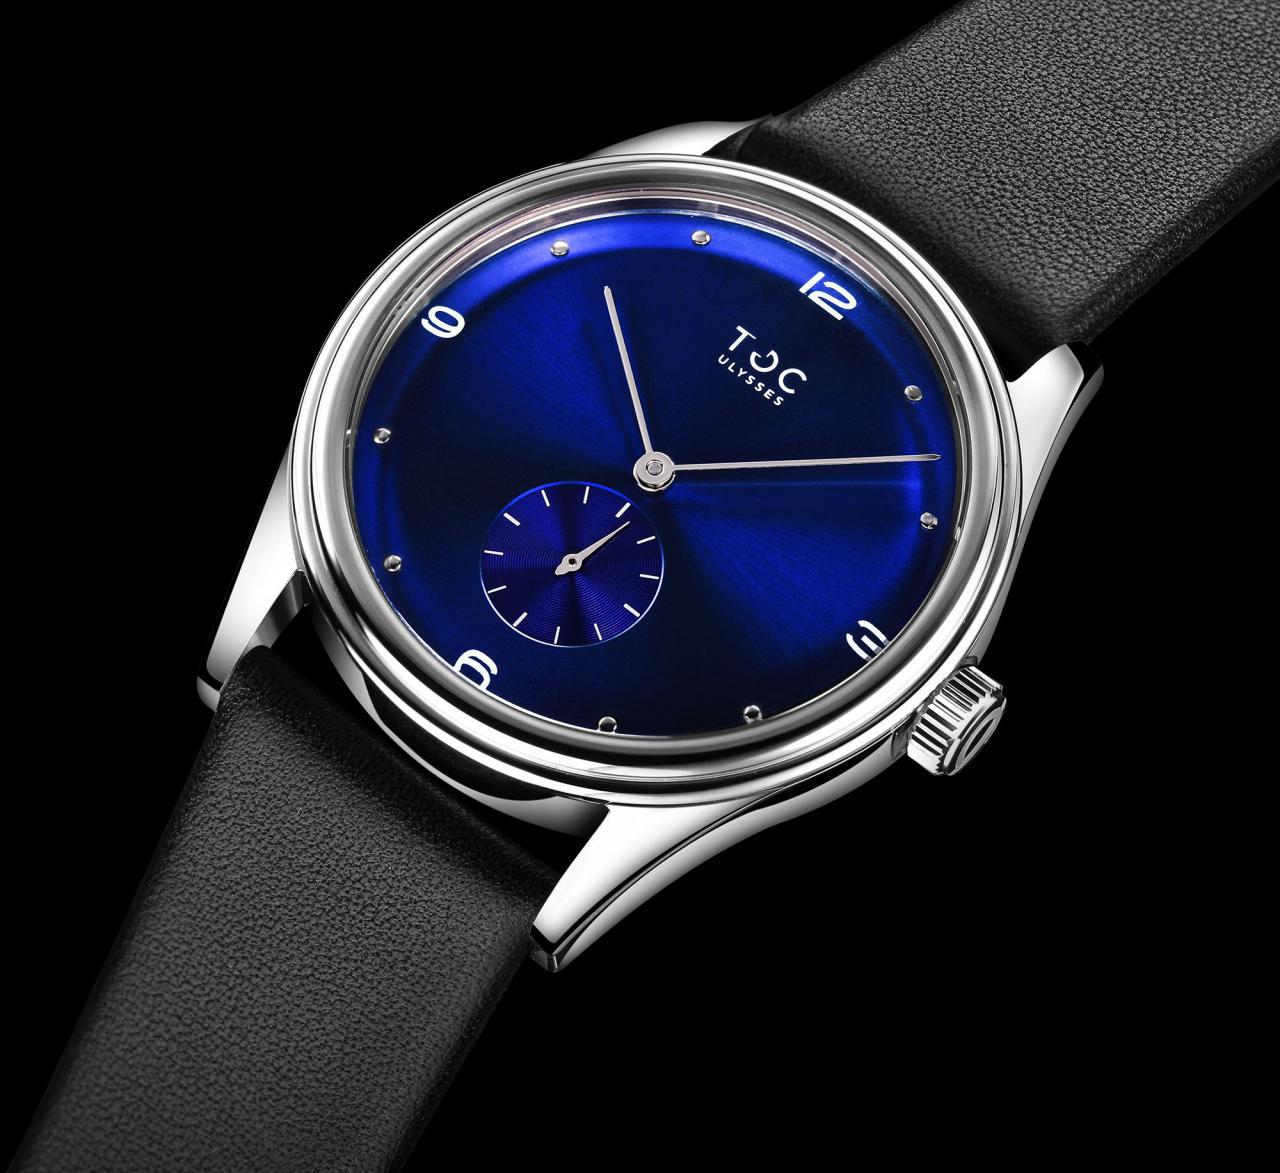 Toc Ulysses Watch Giveaway